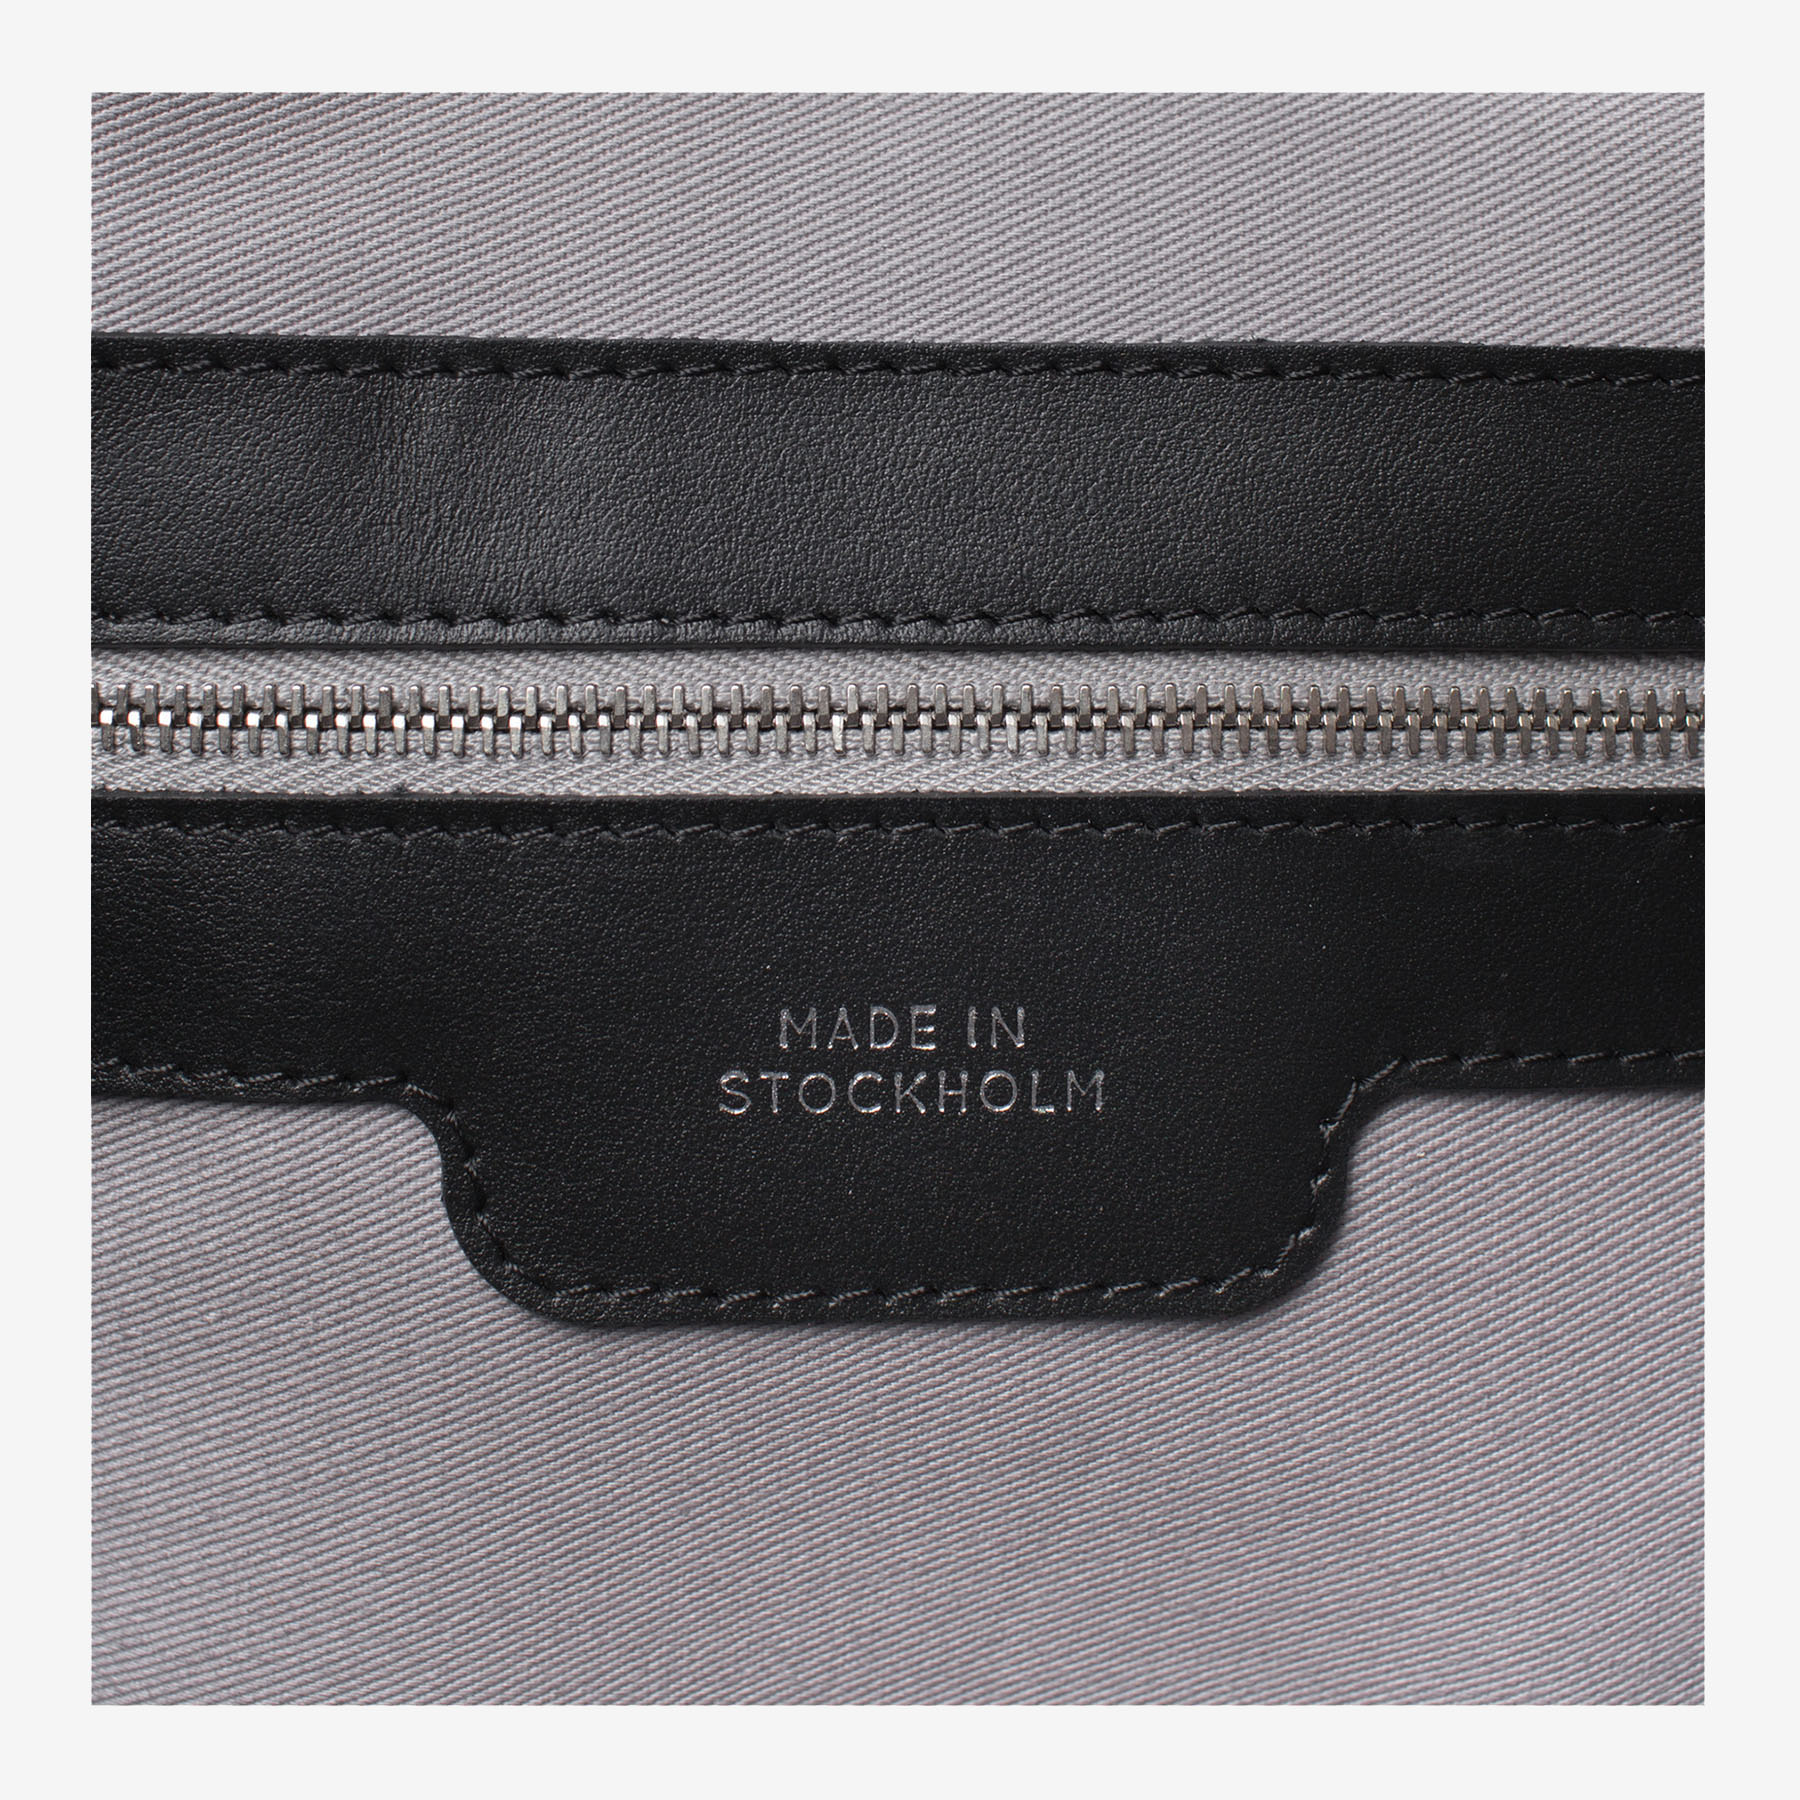 Laimushka leather bag's interior zip pocket with tag Made in Stockholm